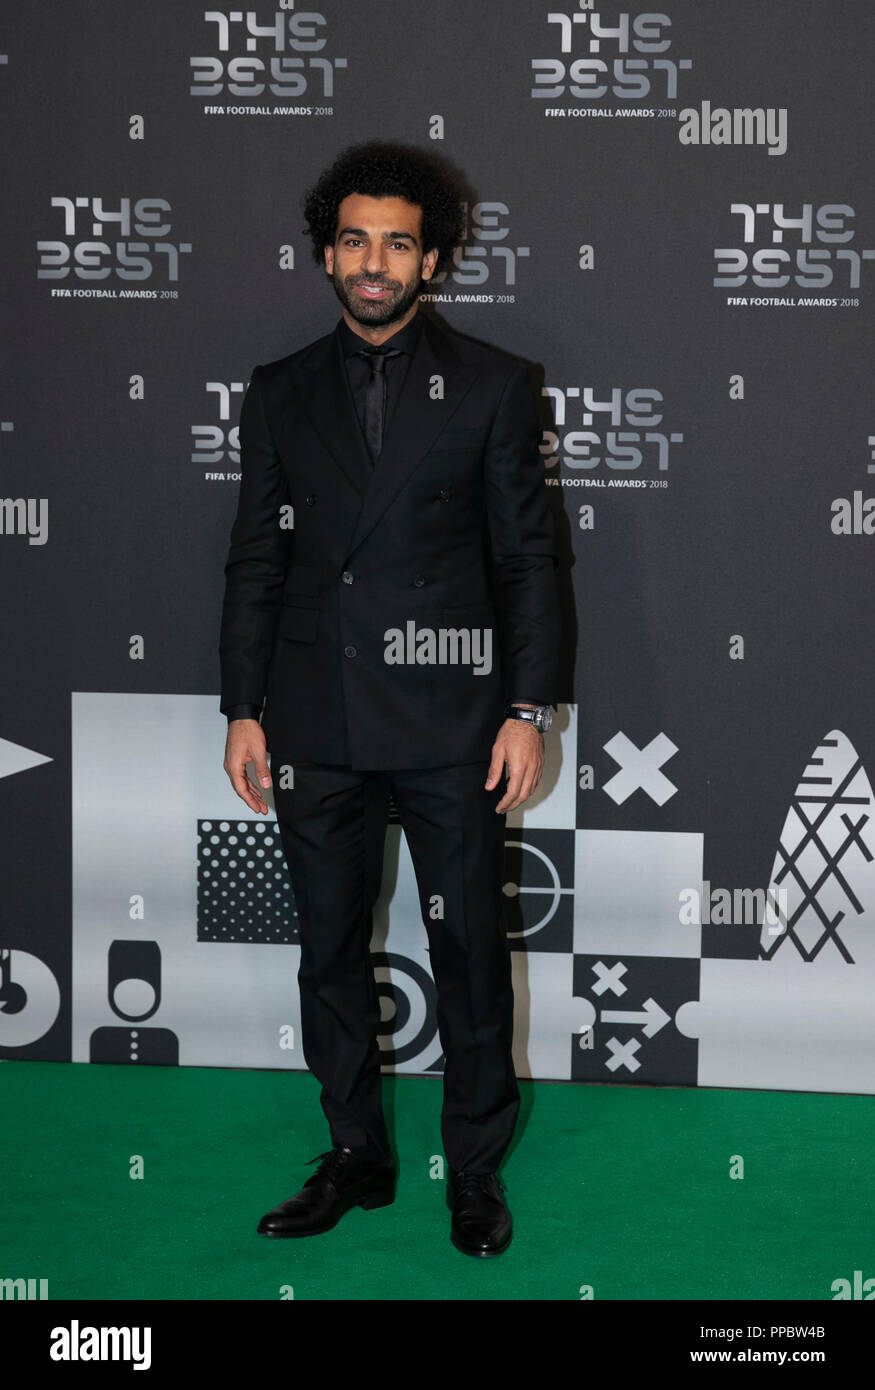 London, UK. 24th Sep, 2018. Mohamed Salah of Liverpool arrives on the Green Carpet ahead of the Best FIFA Football Awards 2018 in London, Britain on Sept. 24, 2018. Credit: Han Yan/Xinhua/Alamy Live News Stock Photo